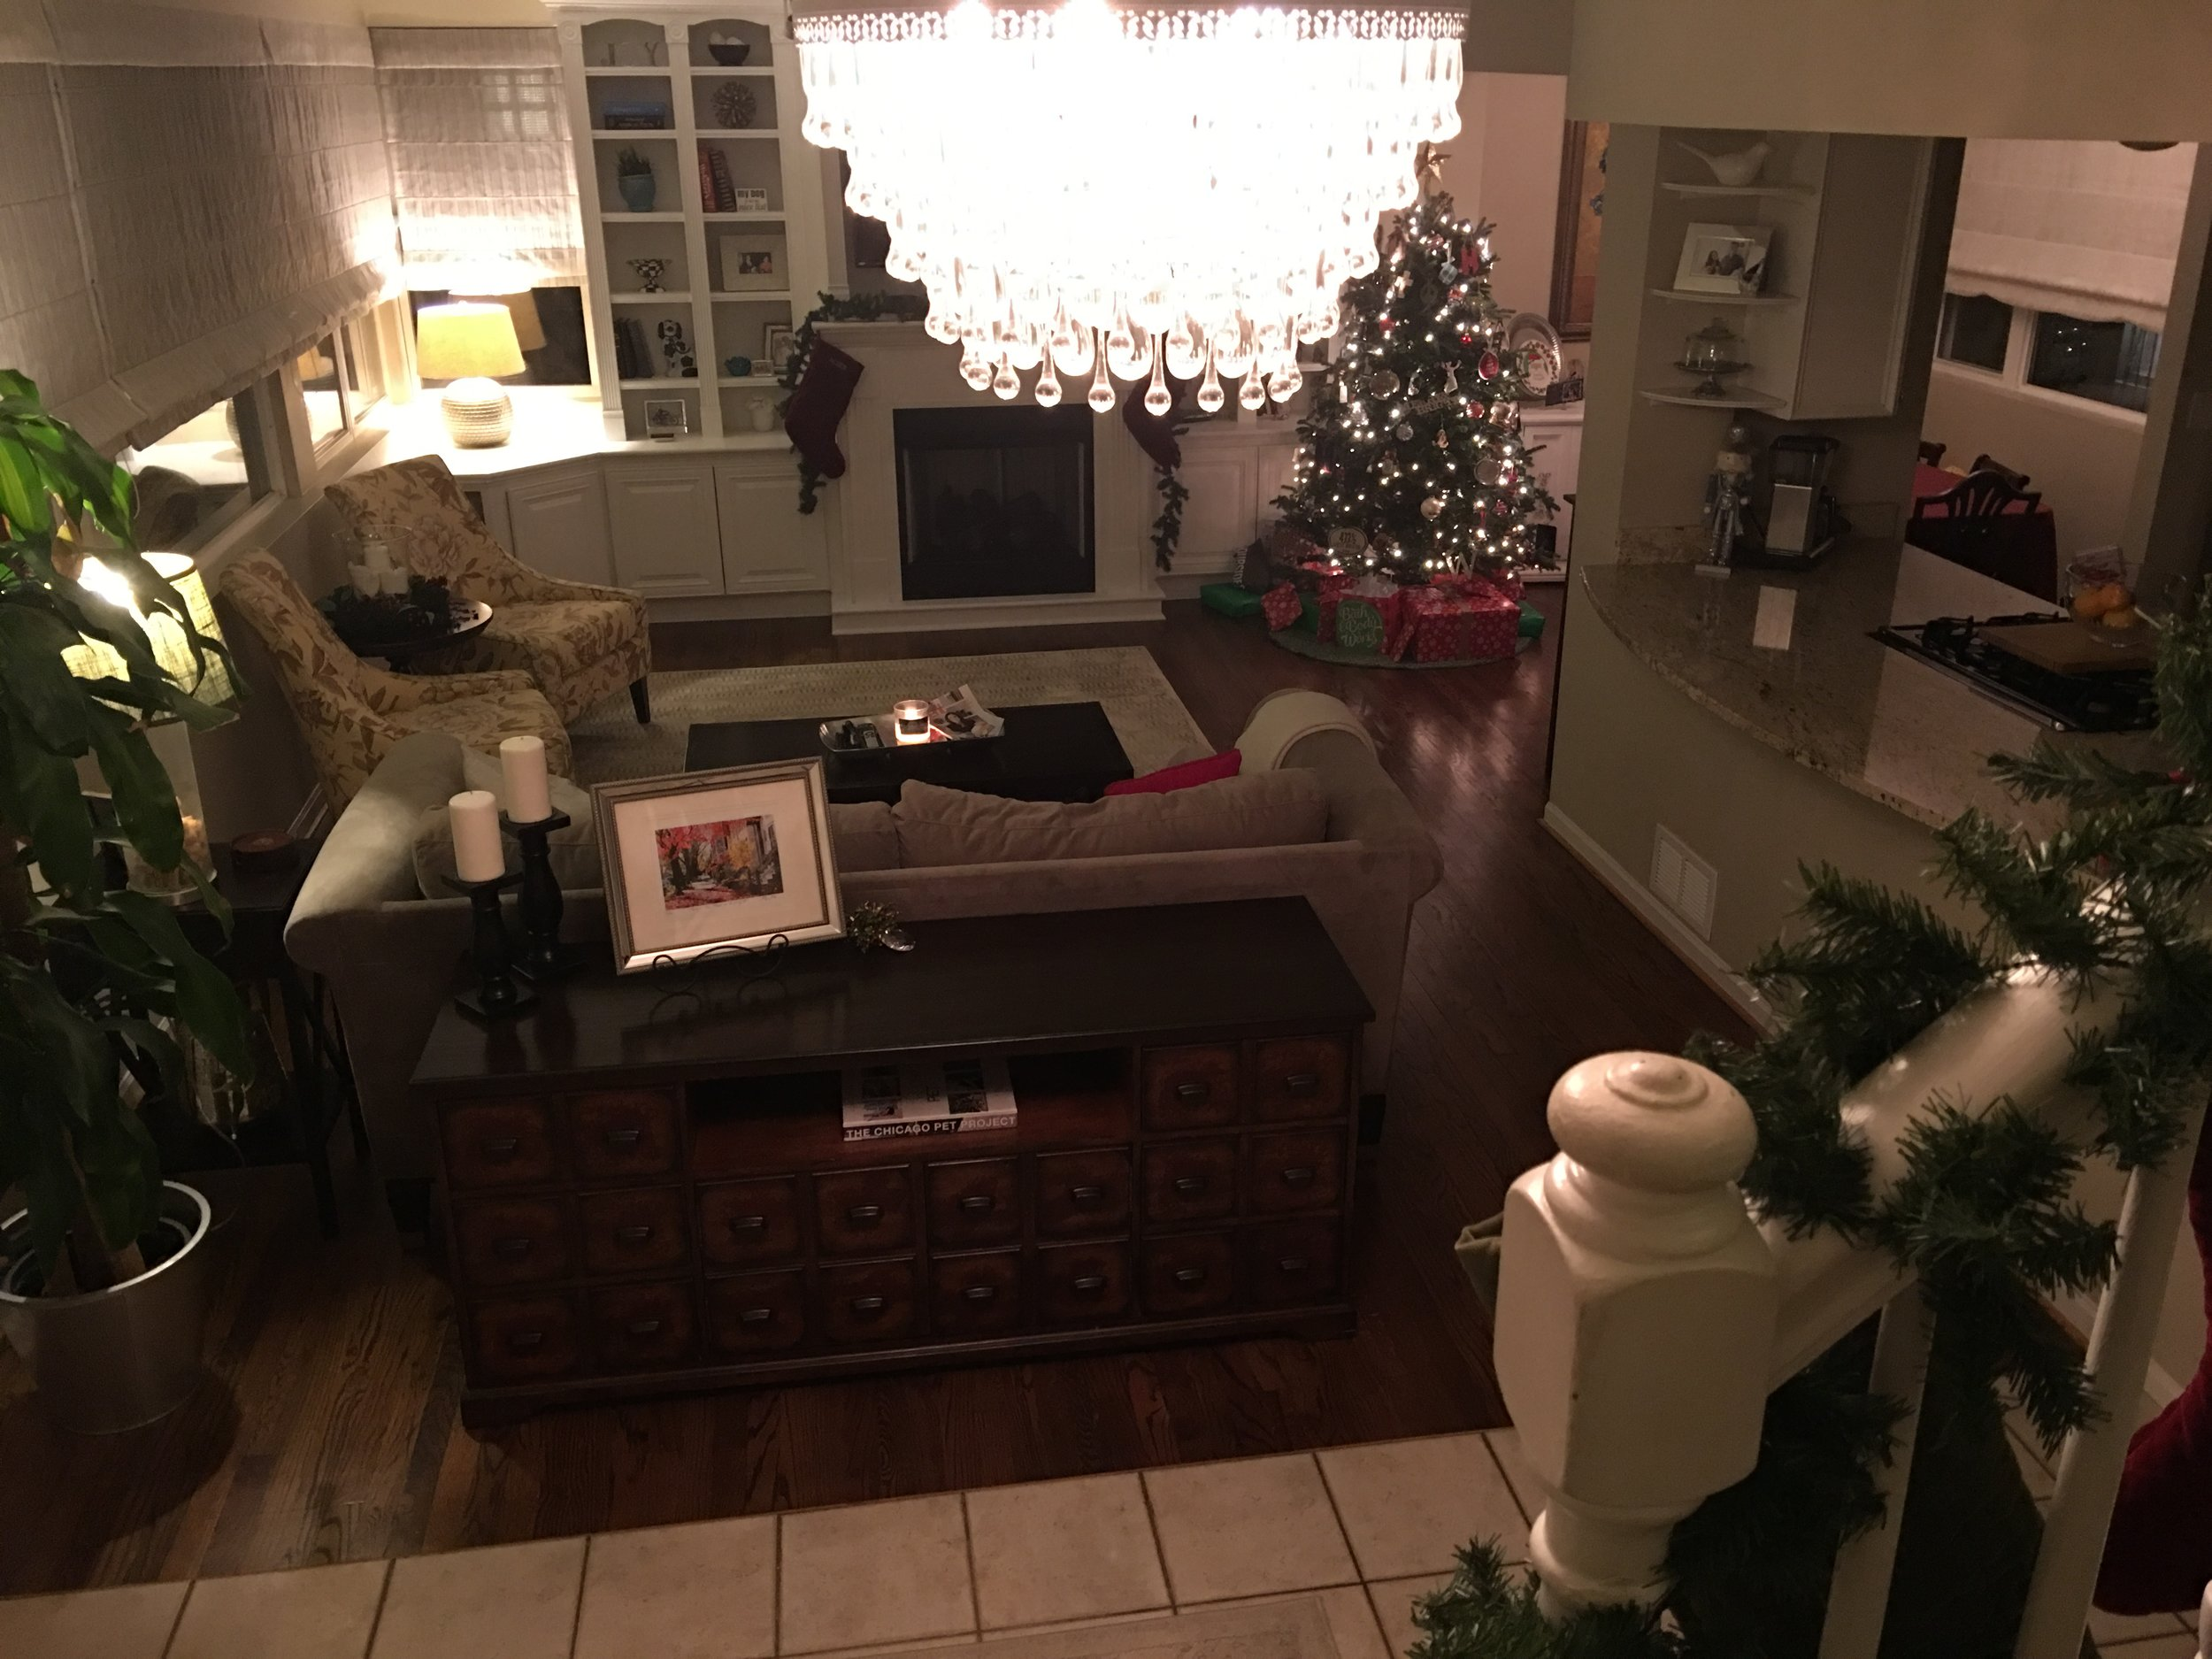 Our main room decorated for the holidays!